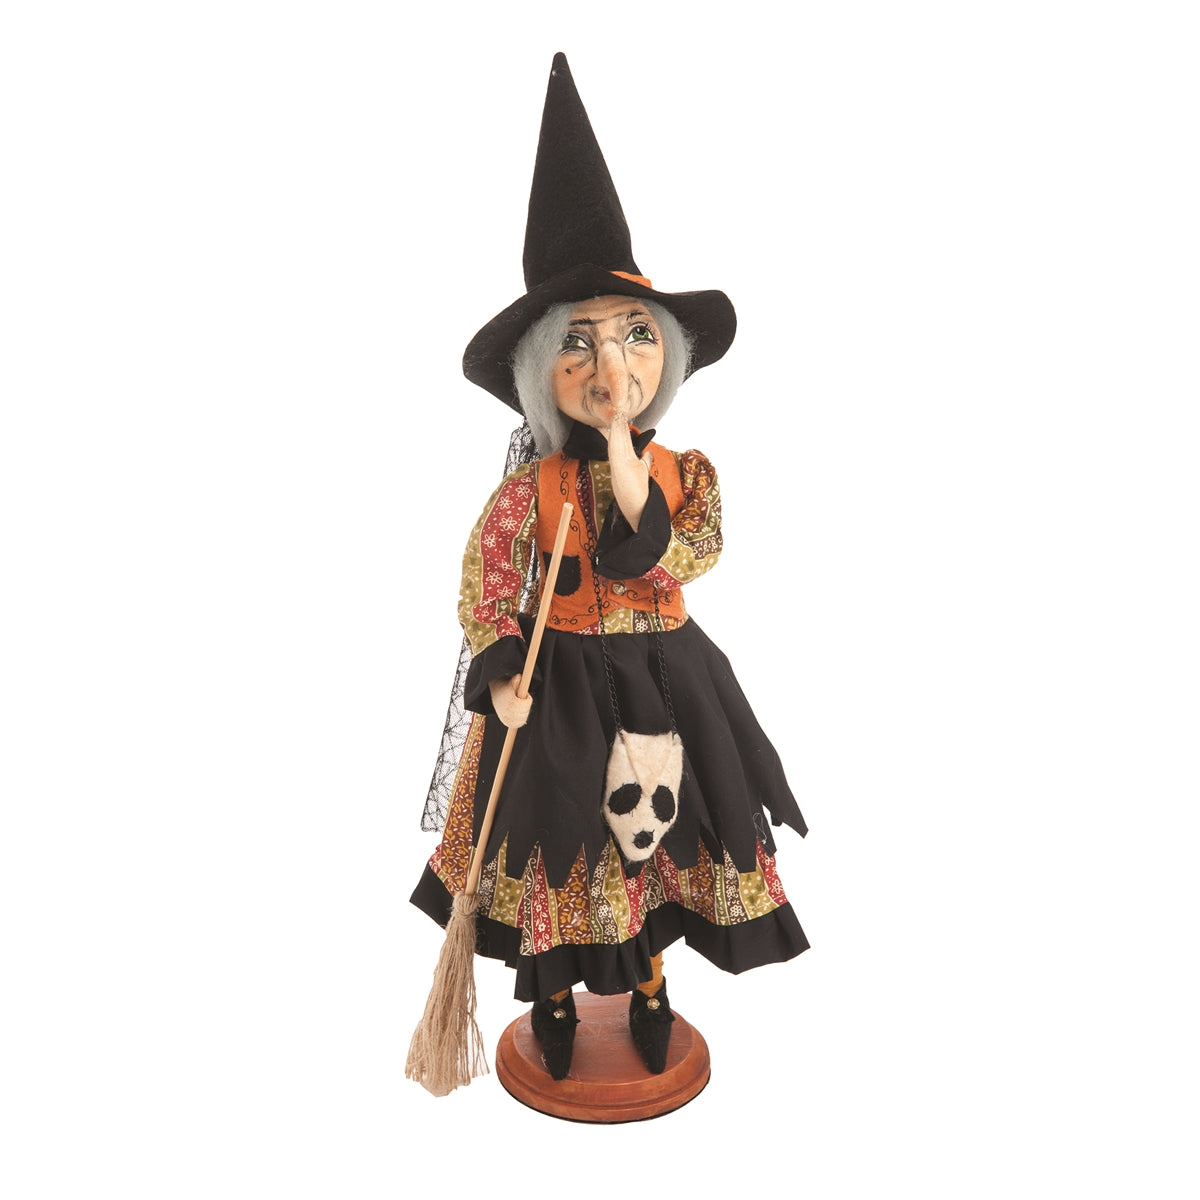 Joe Spencer Prunella Witch on Stand - Cloth Halloween Dolls